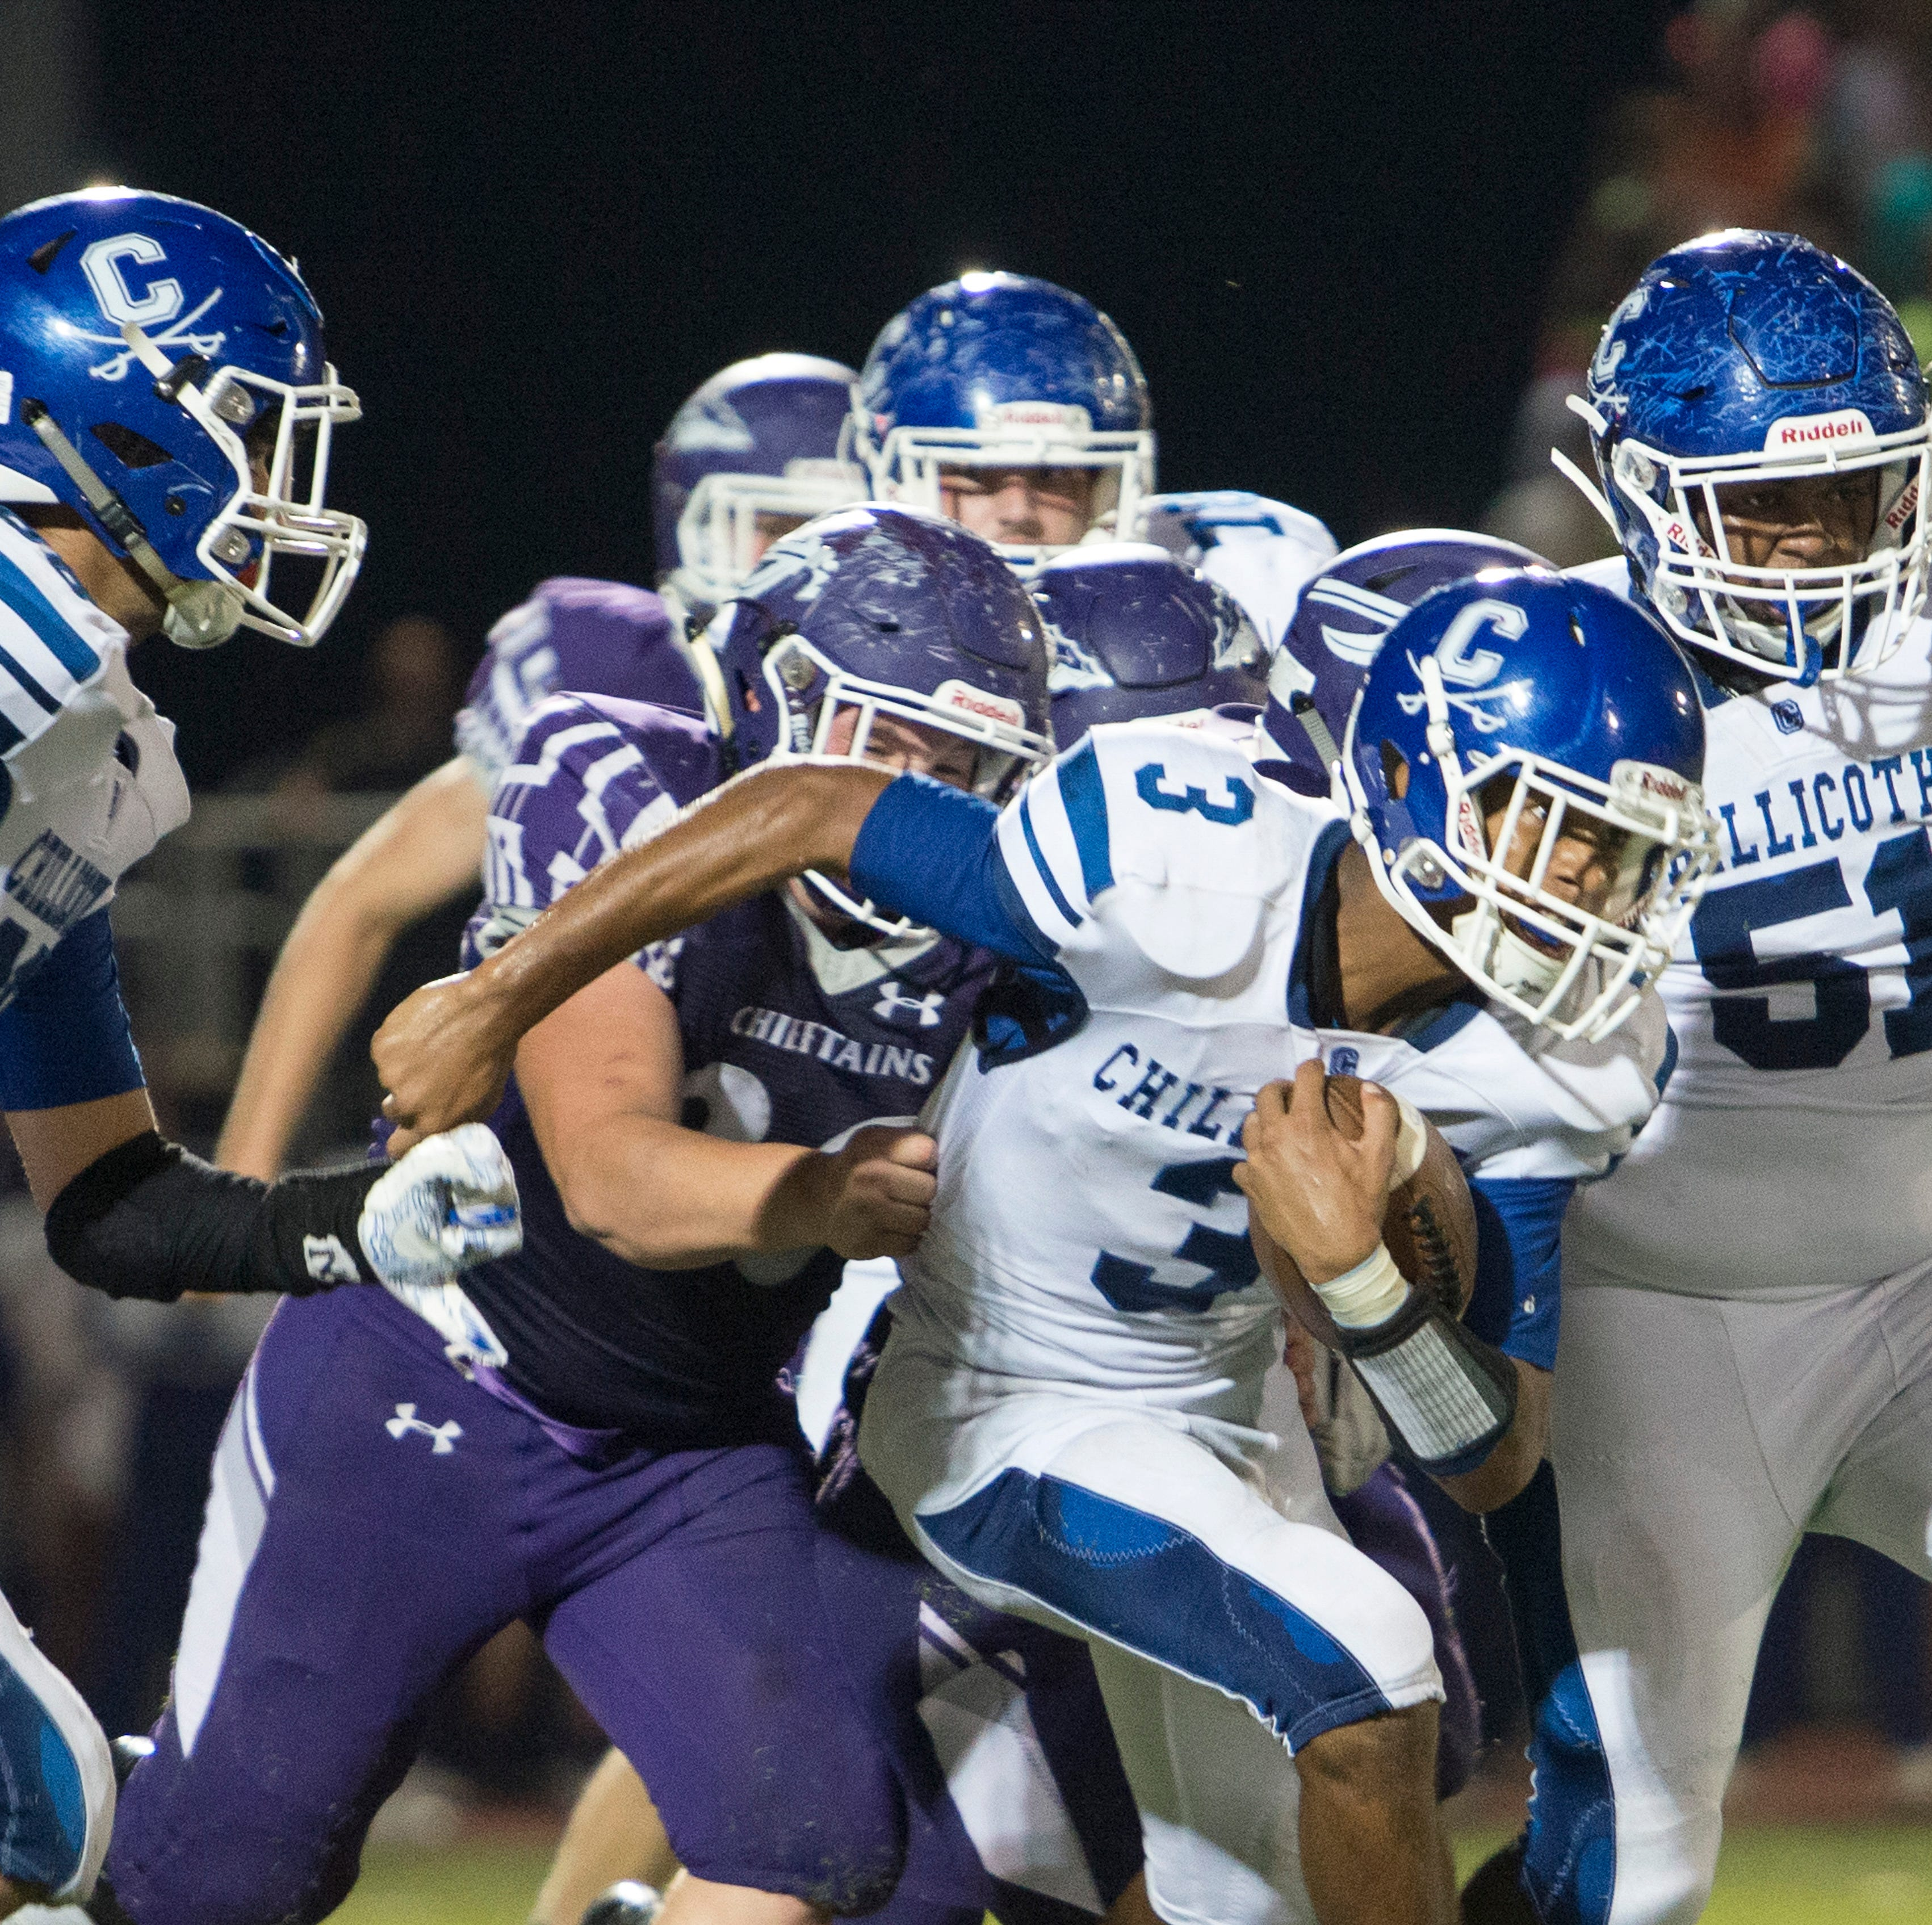 CW Columbus to air Chillicothe, Logan football game on Thursday Night Lights